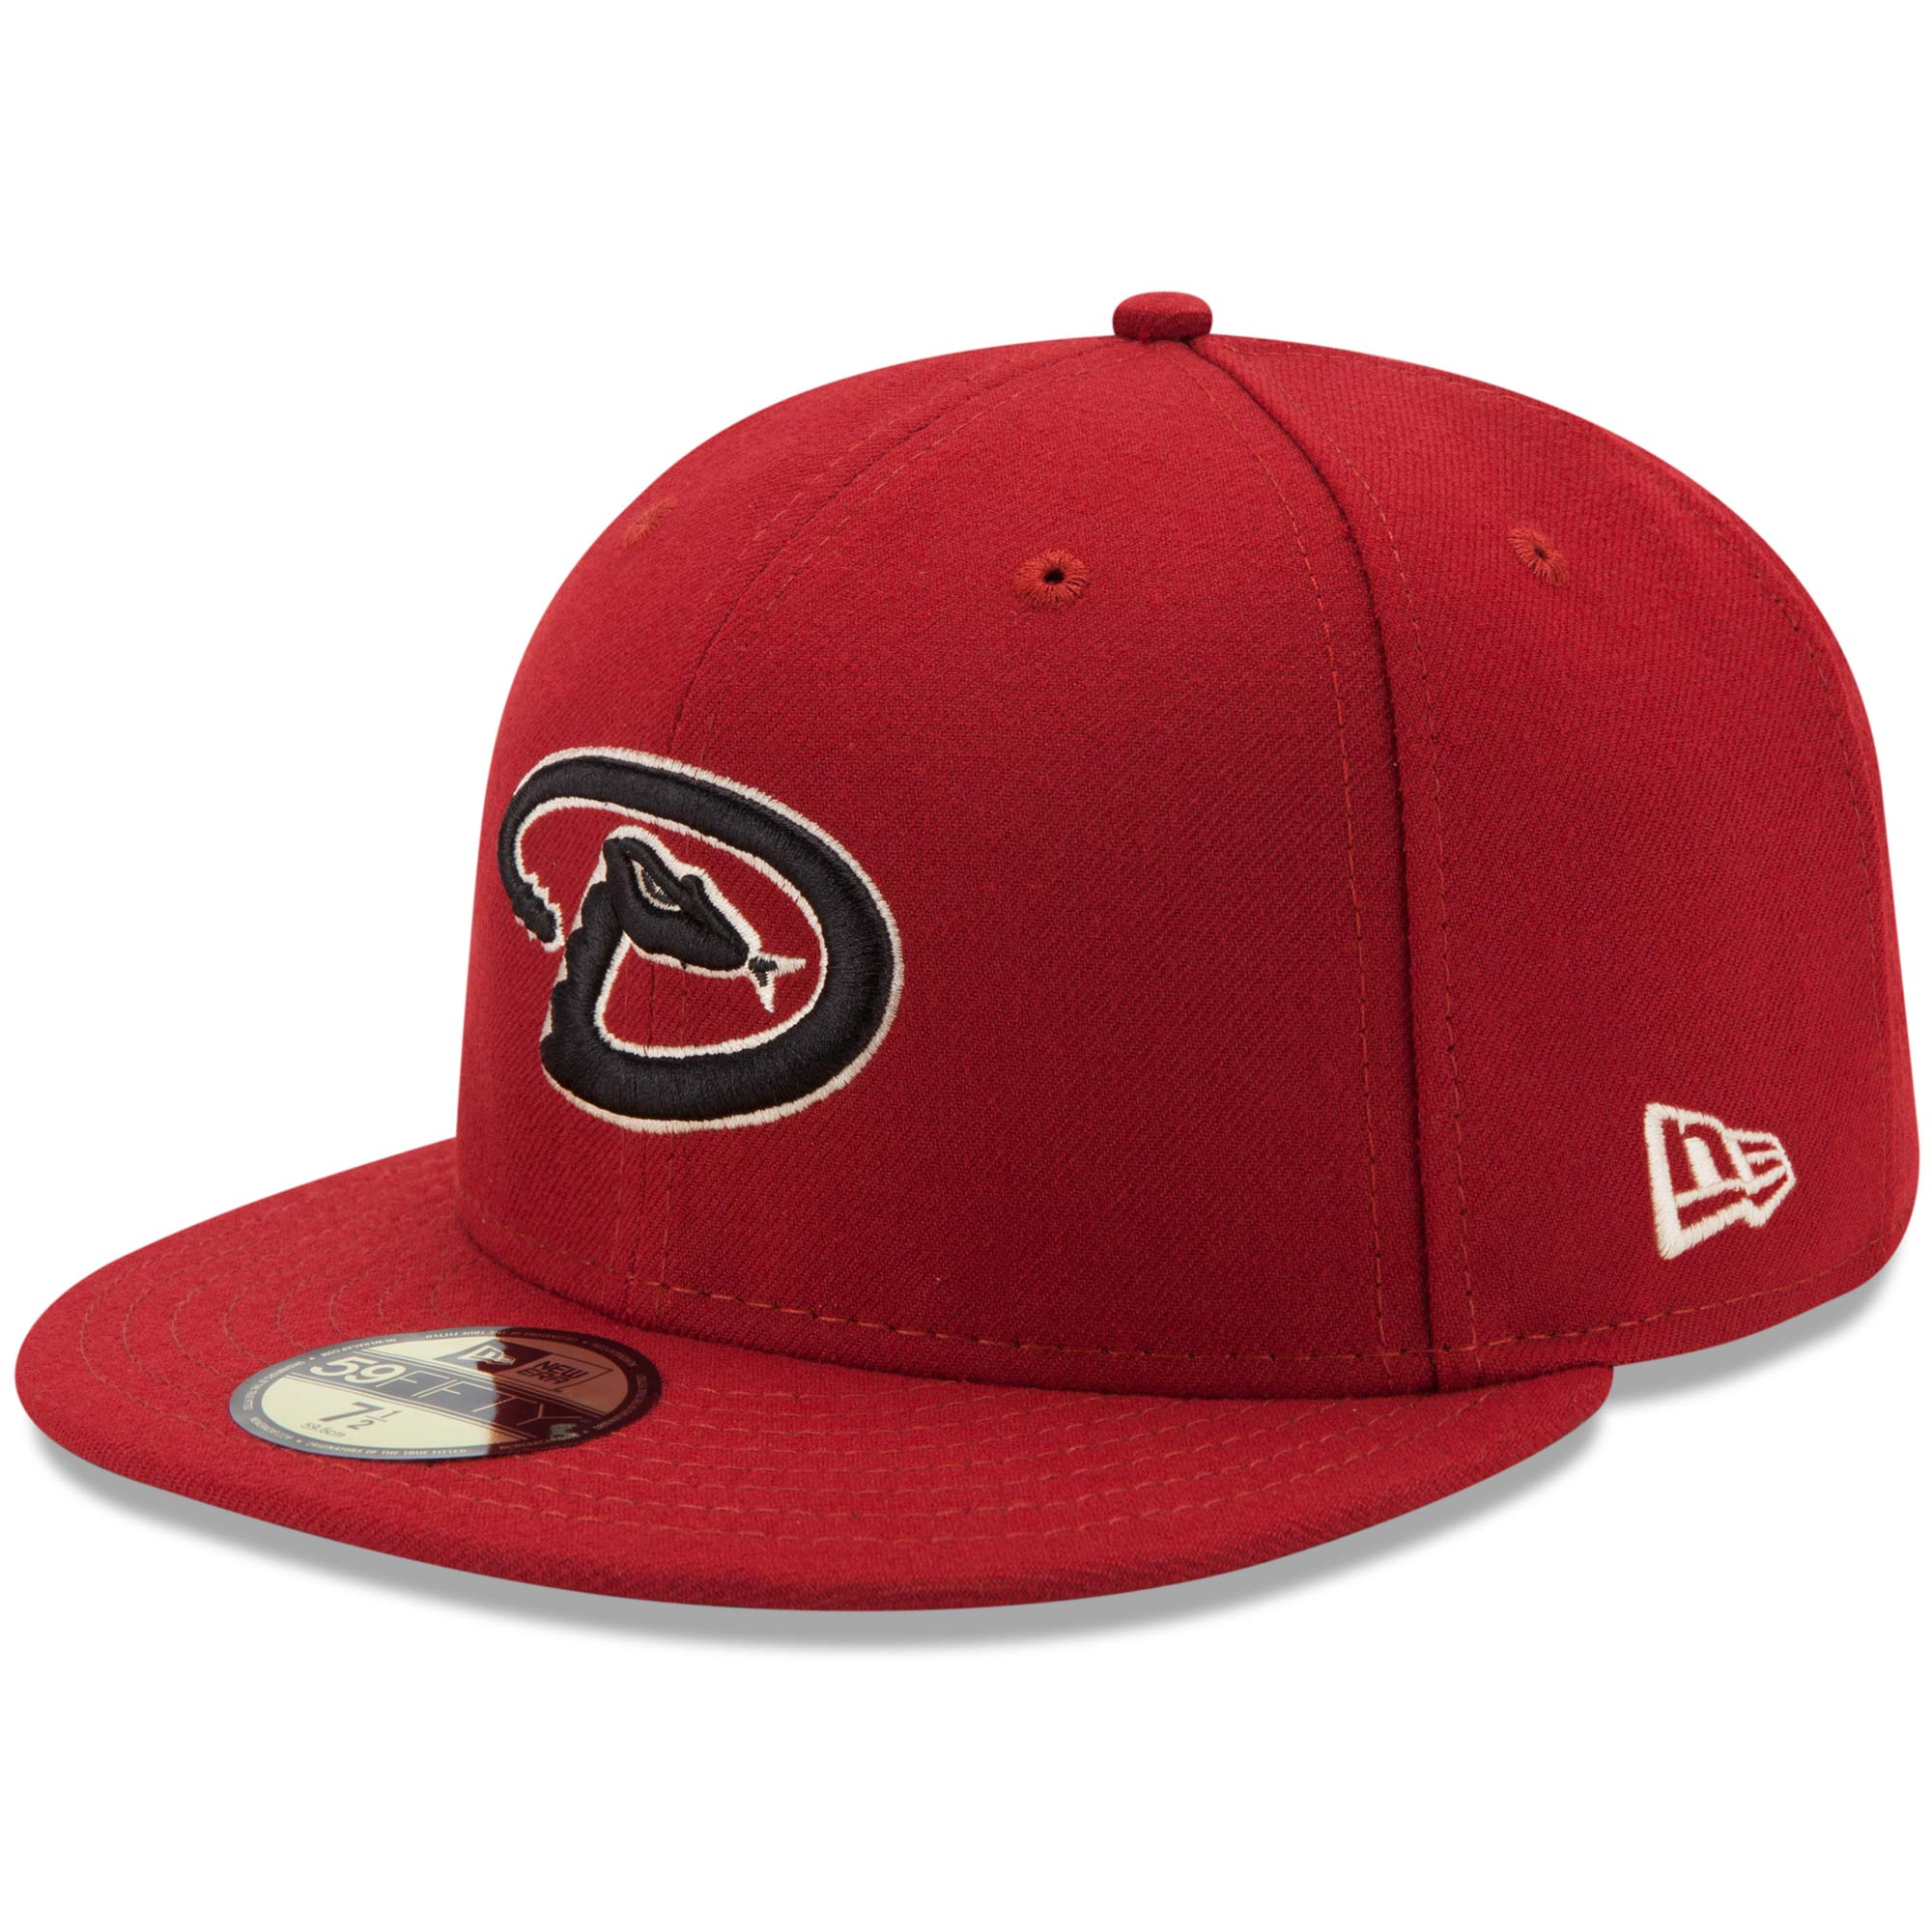 Arizona Diamondbacks New Era Alternate 4 Authentic On Field 59FIFTY Fitted Hat - Red